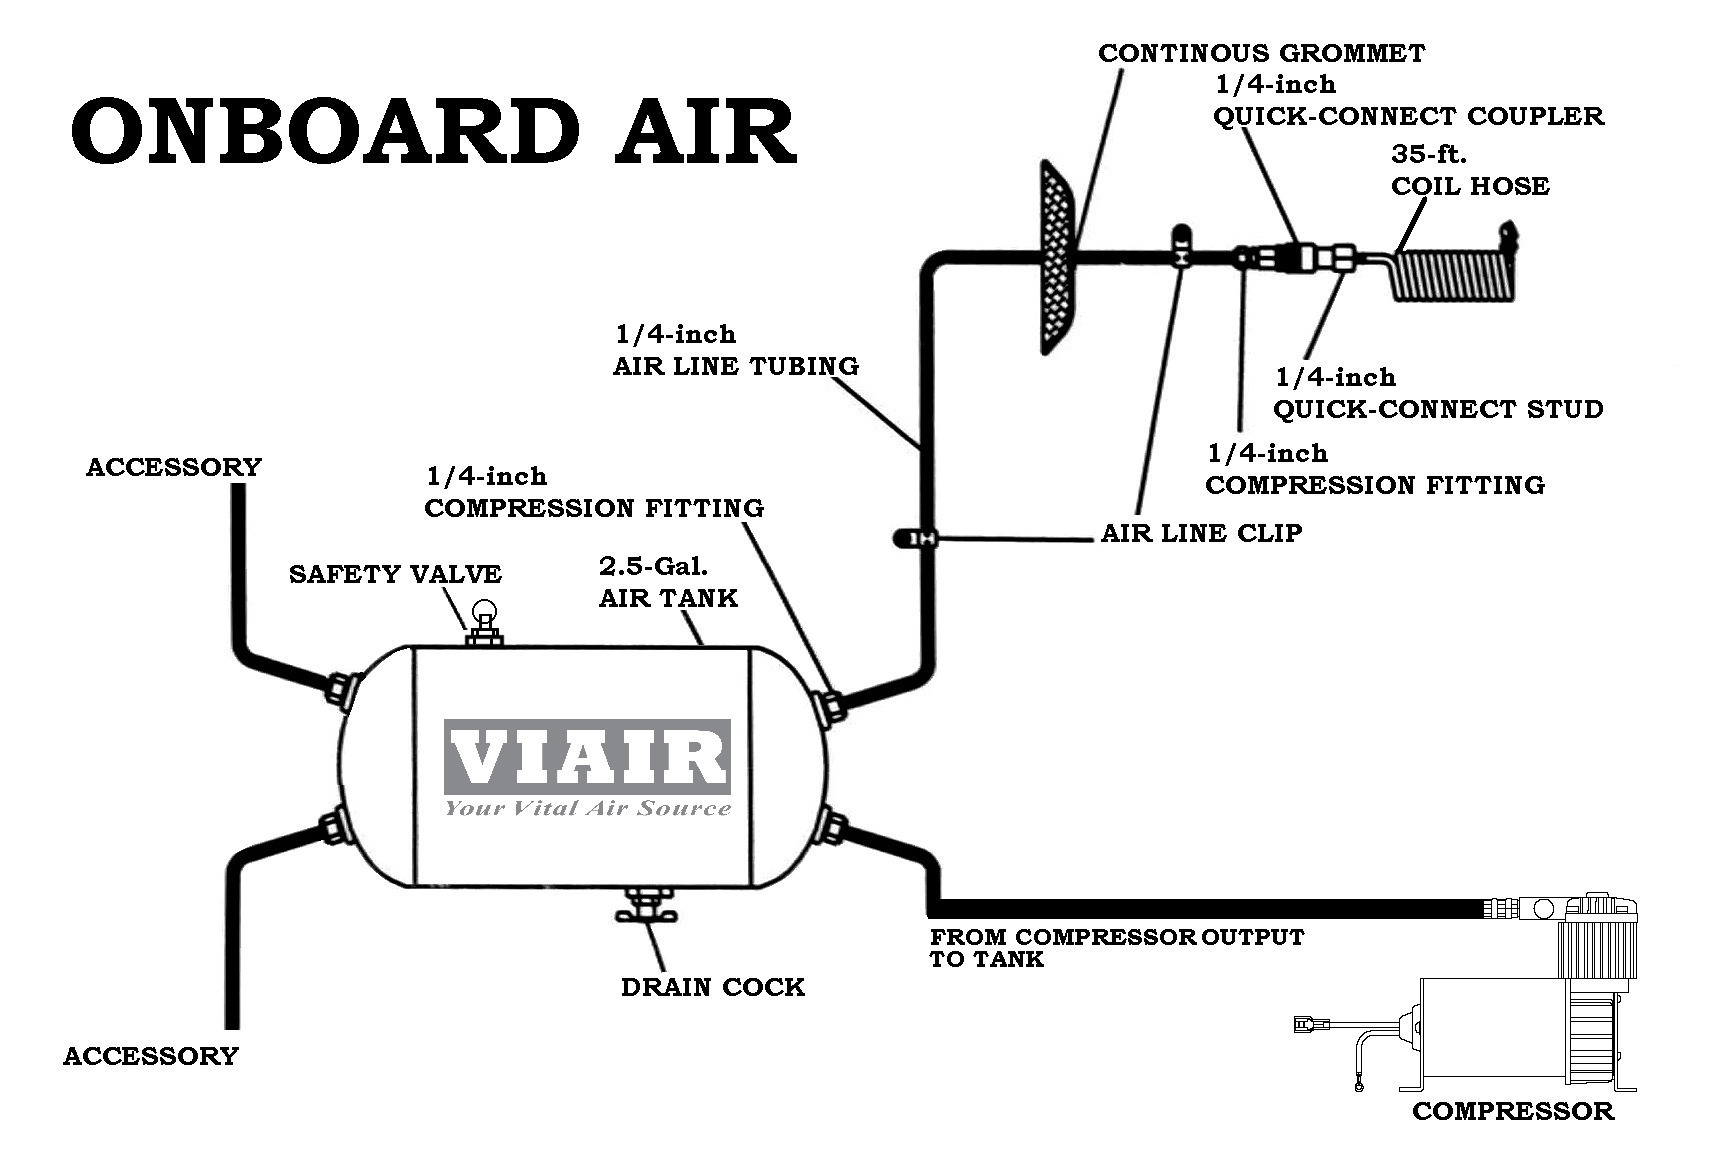 onboard_air air compressor wiring diagram schematic air compressor motor ac compressor diagram at mifinder.co